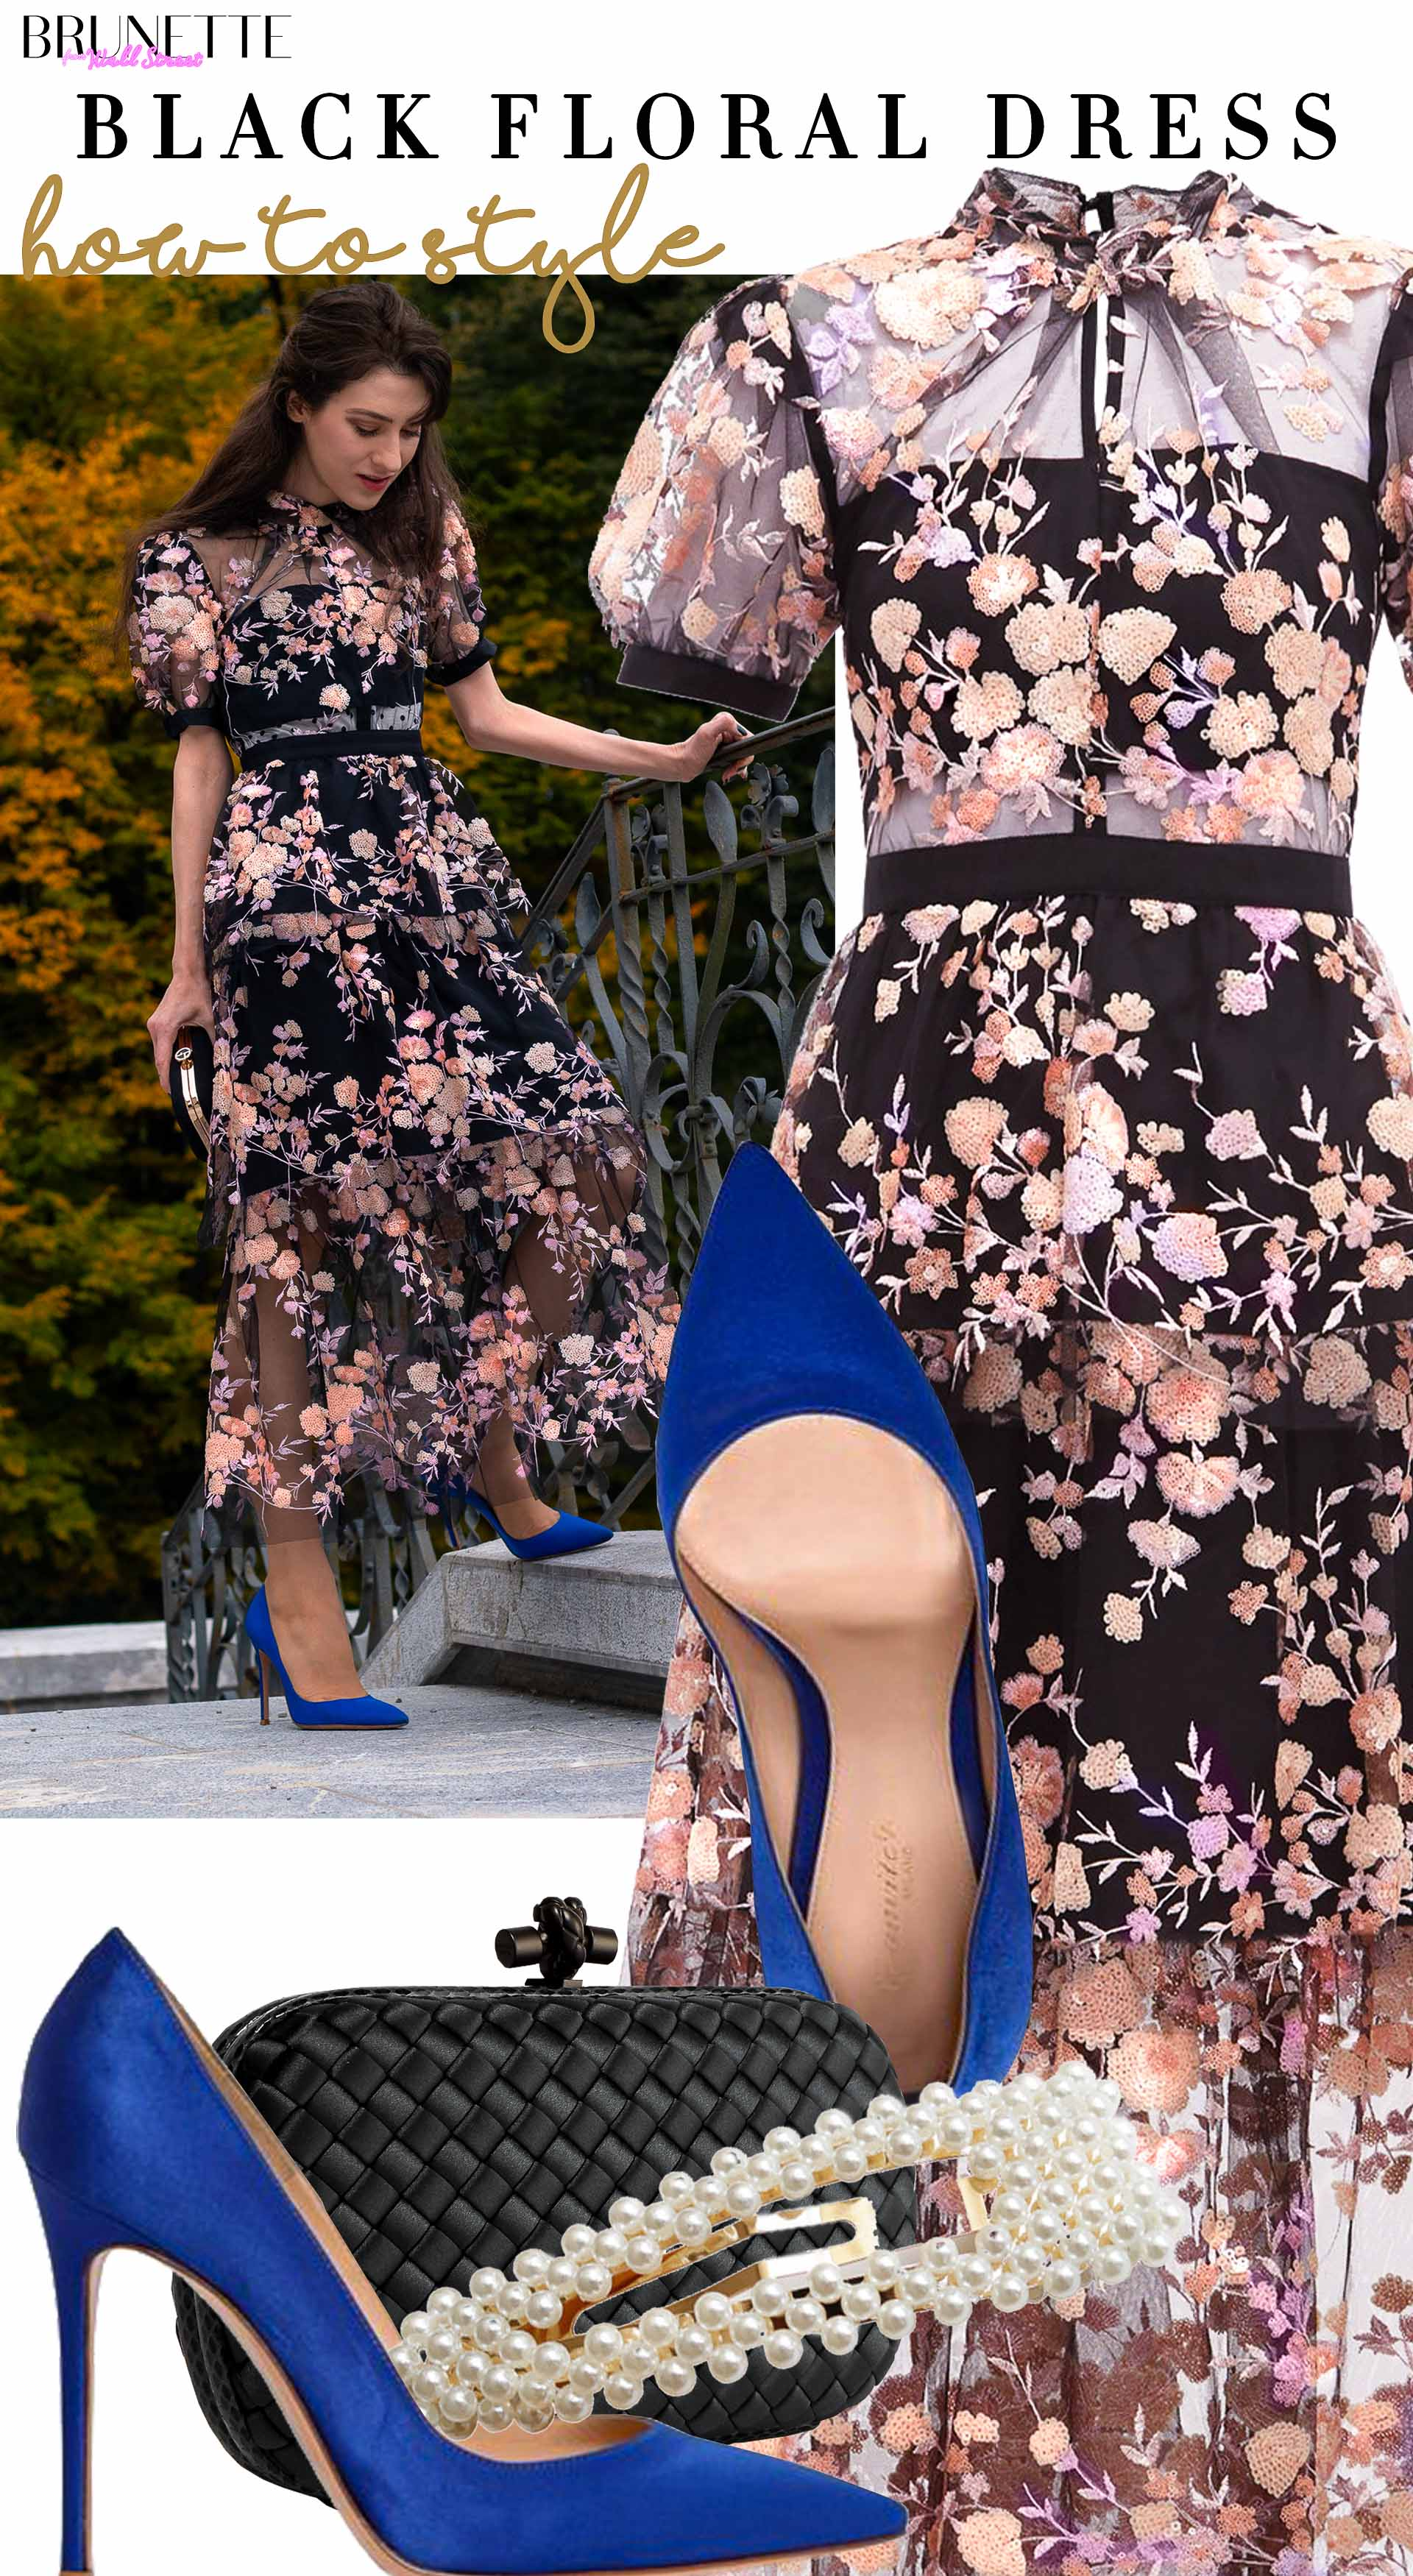 Brunette from Wall Street how to style black floral dress Self Portrait blue Gianvito Rossi pumps Bottegga Veneta clutch pearl hairpin for fall wedding party